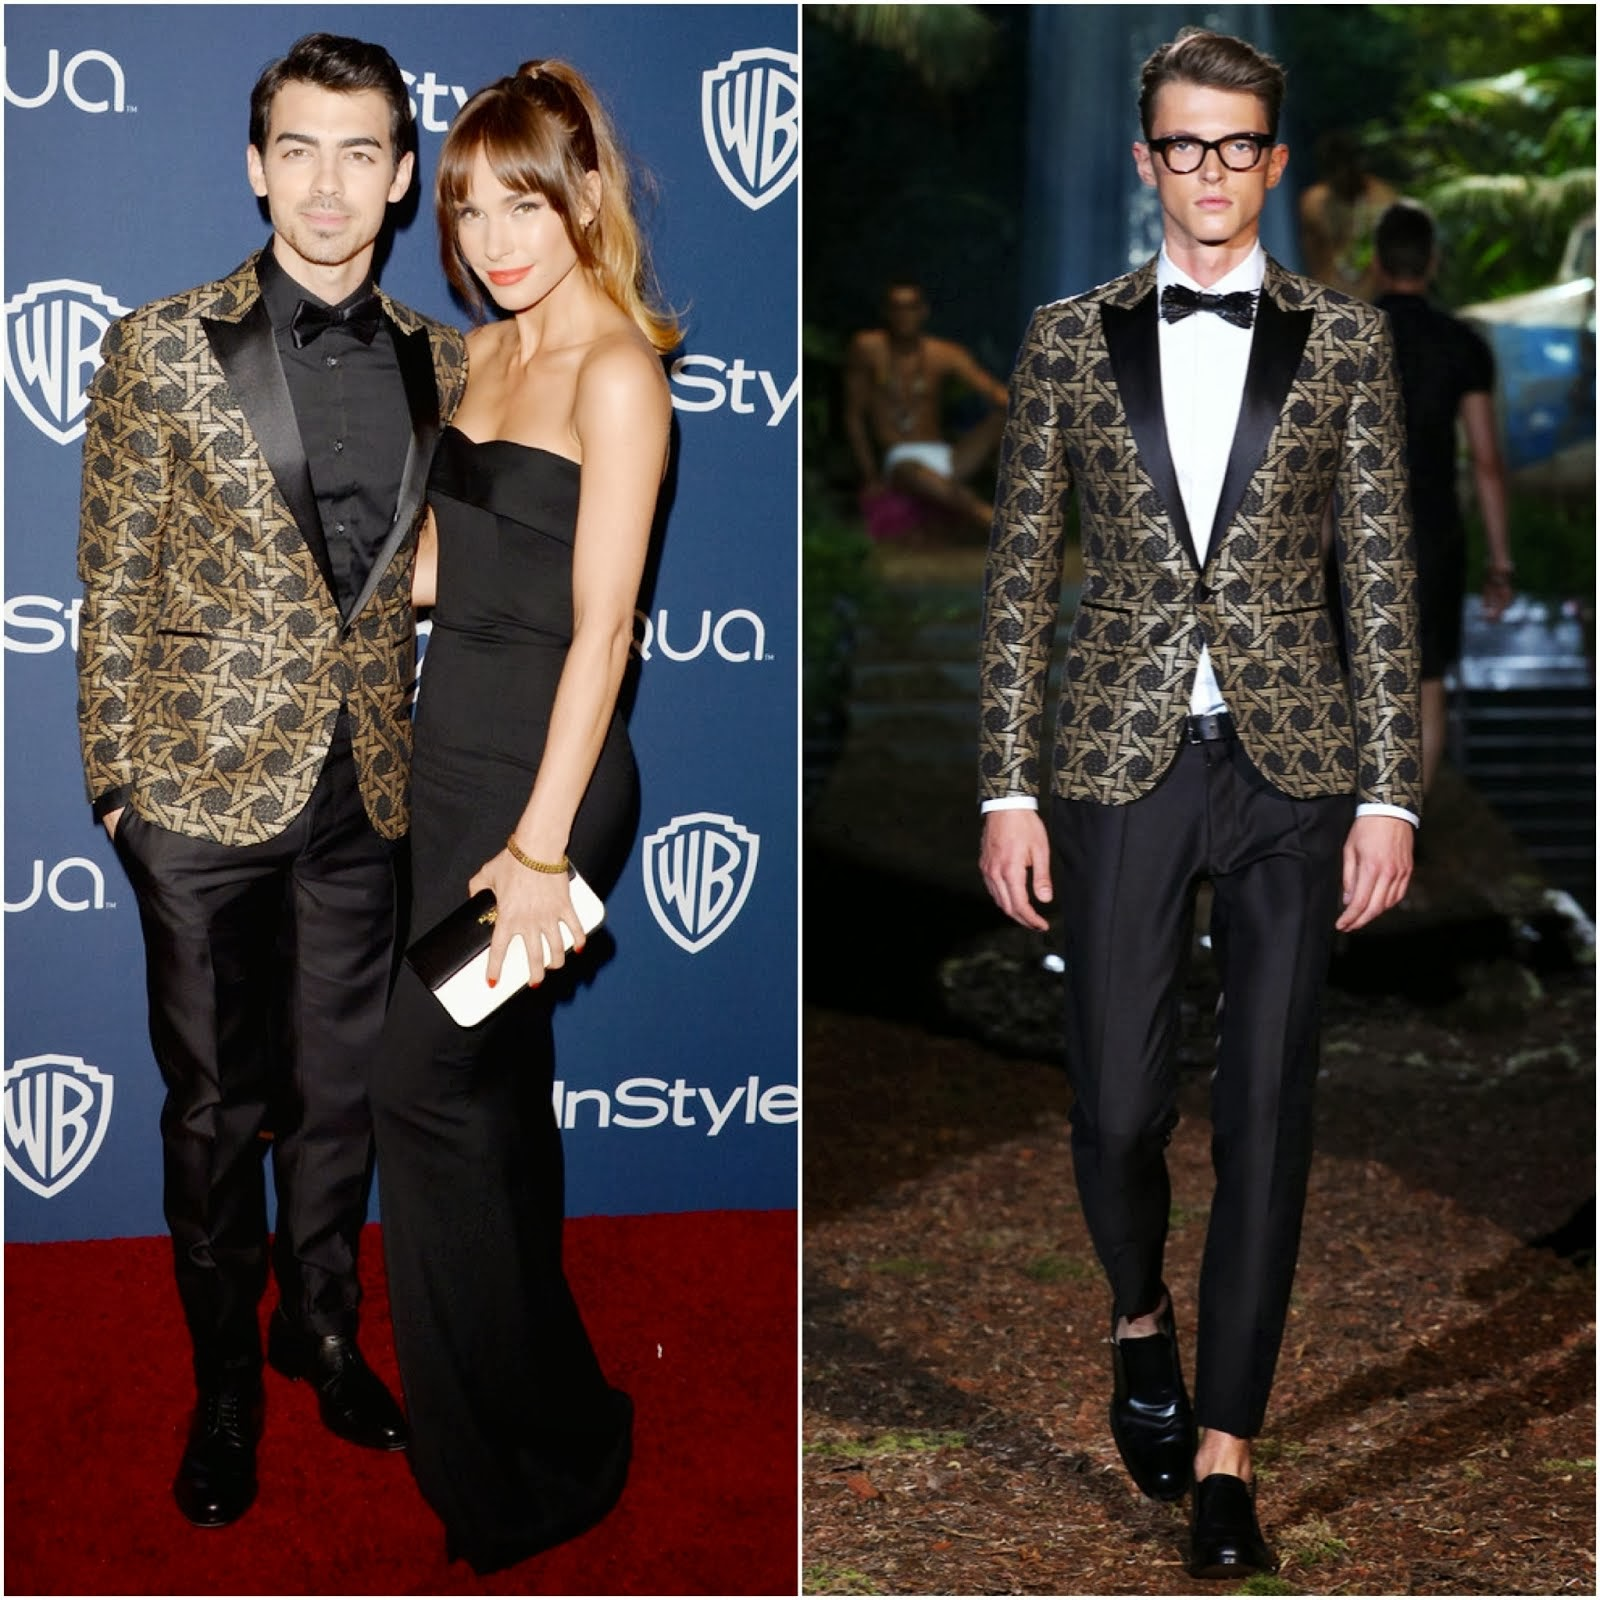 Joe Jonas in DSQUARED² TOKYO EMBROIDERED COTTON EVENING JACKET - InStyle/Warner Bros. Golden Globes Party 2014